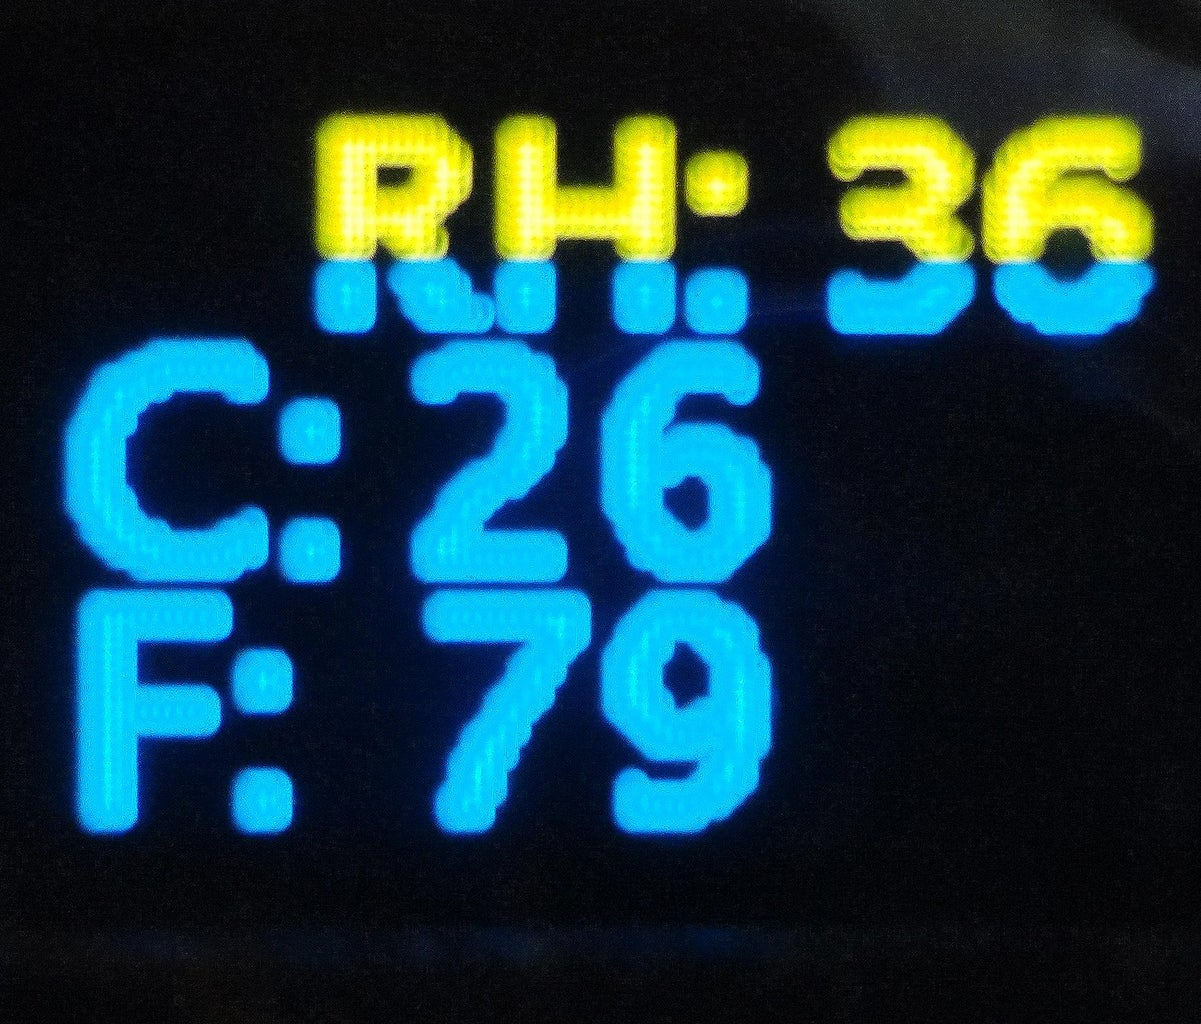 Experiment-3  Humidity and Temperature and Displayed on OLED